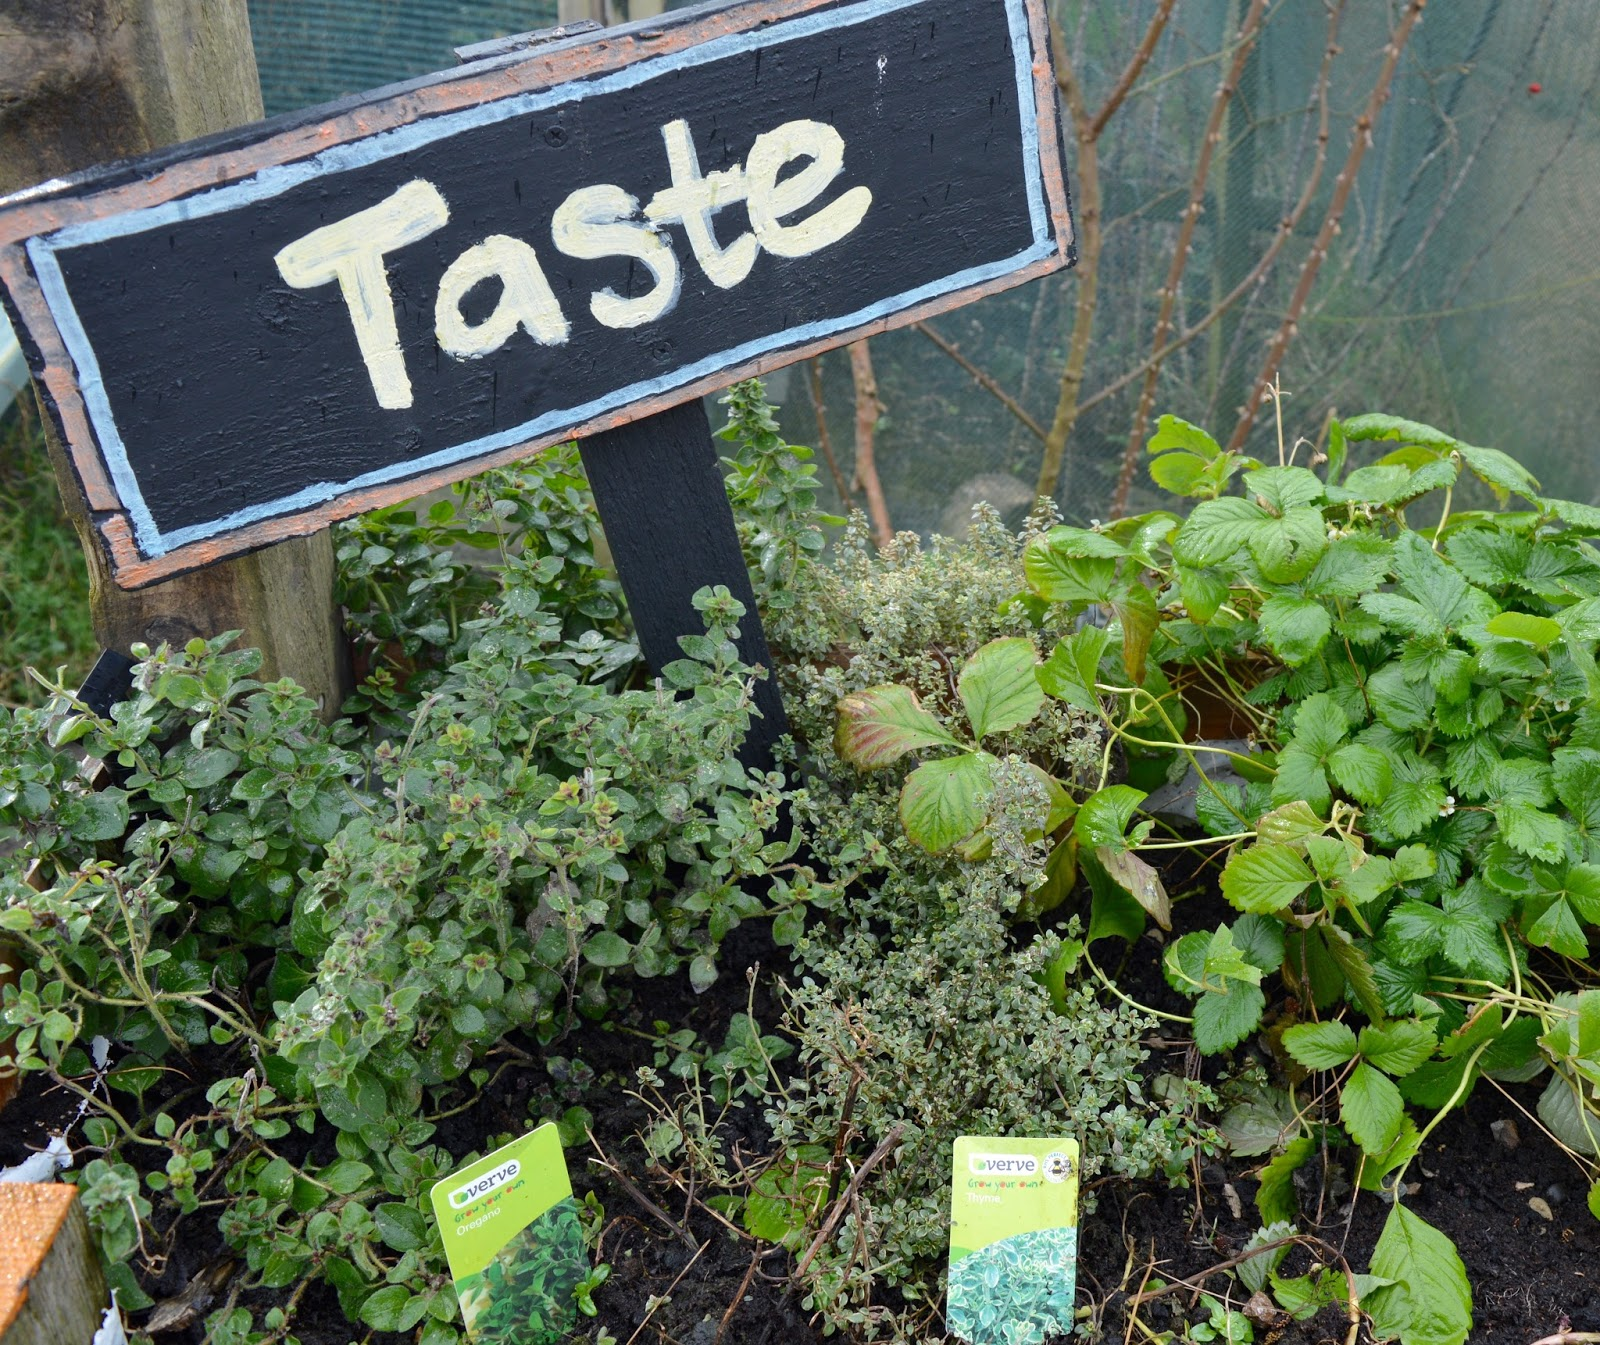 Ouseburn Farm Newcastle | A FREE Place to Take the Kids - sensory garden taste